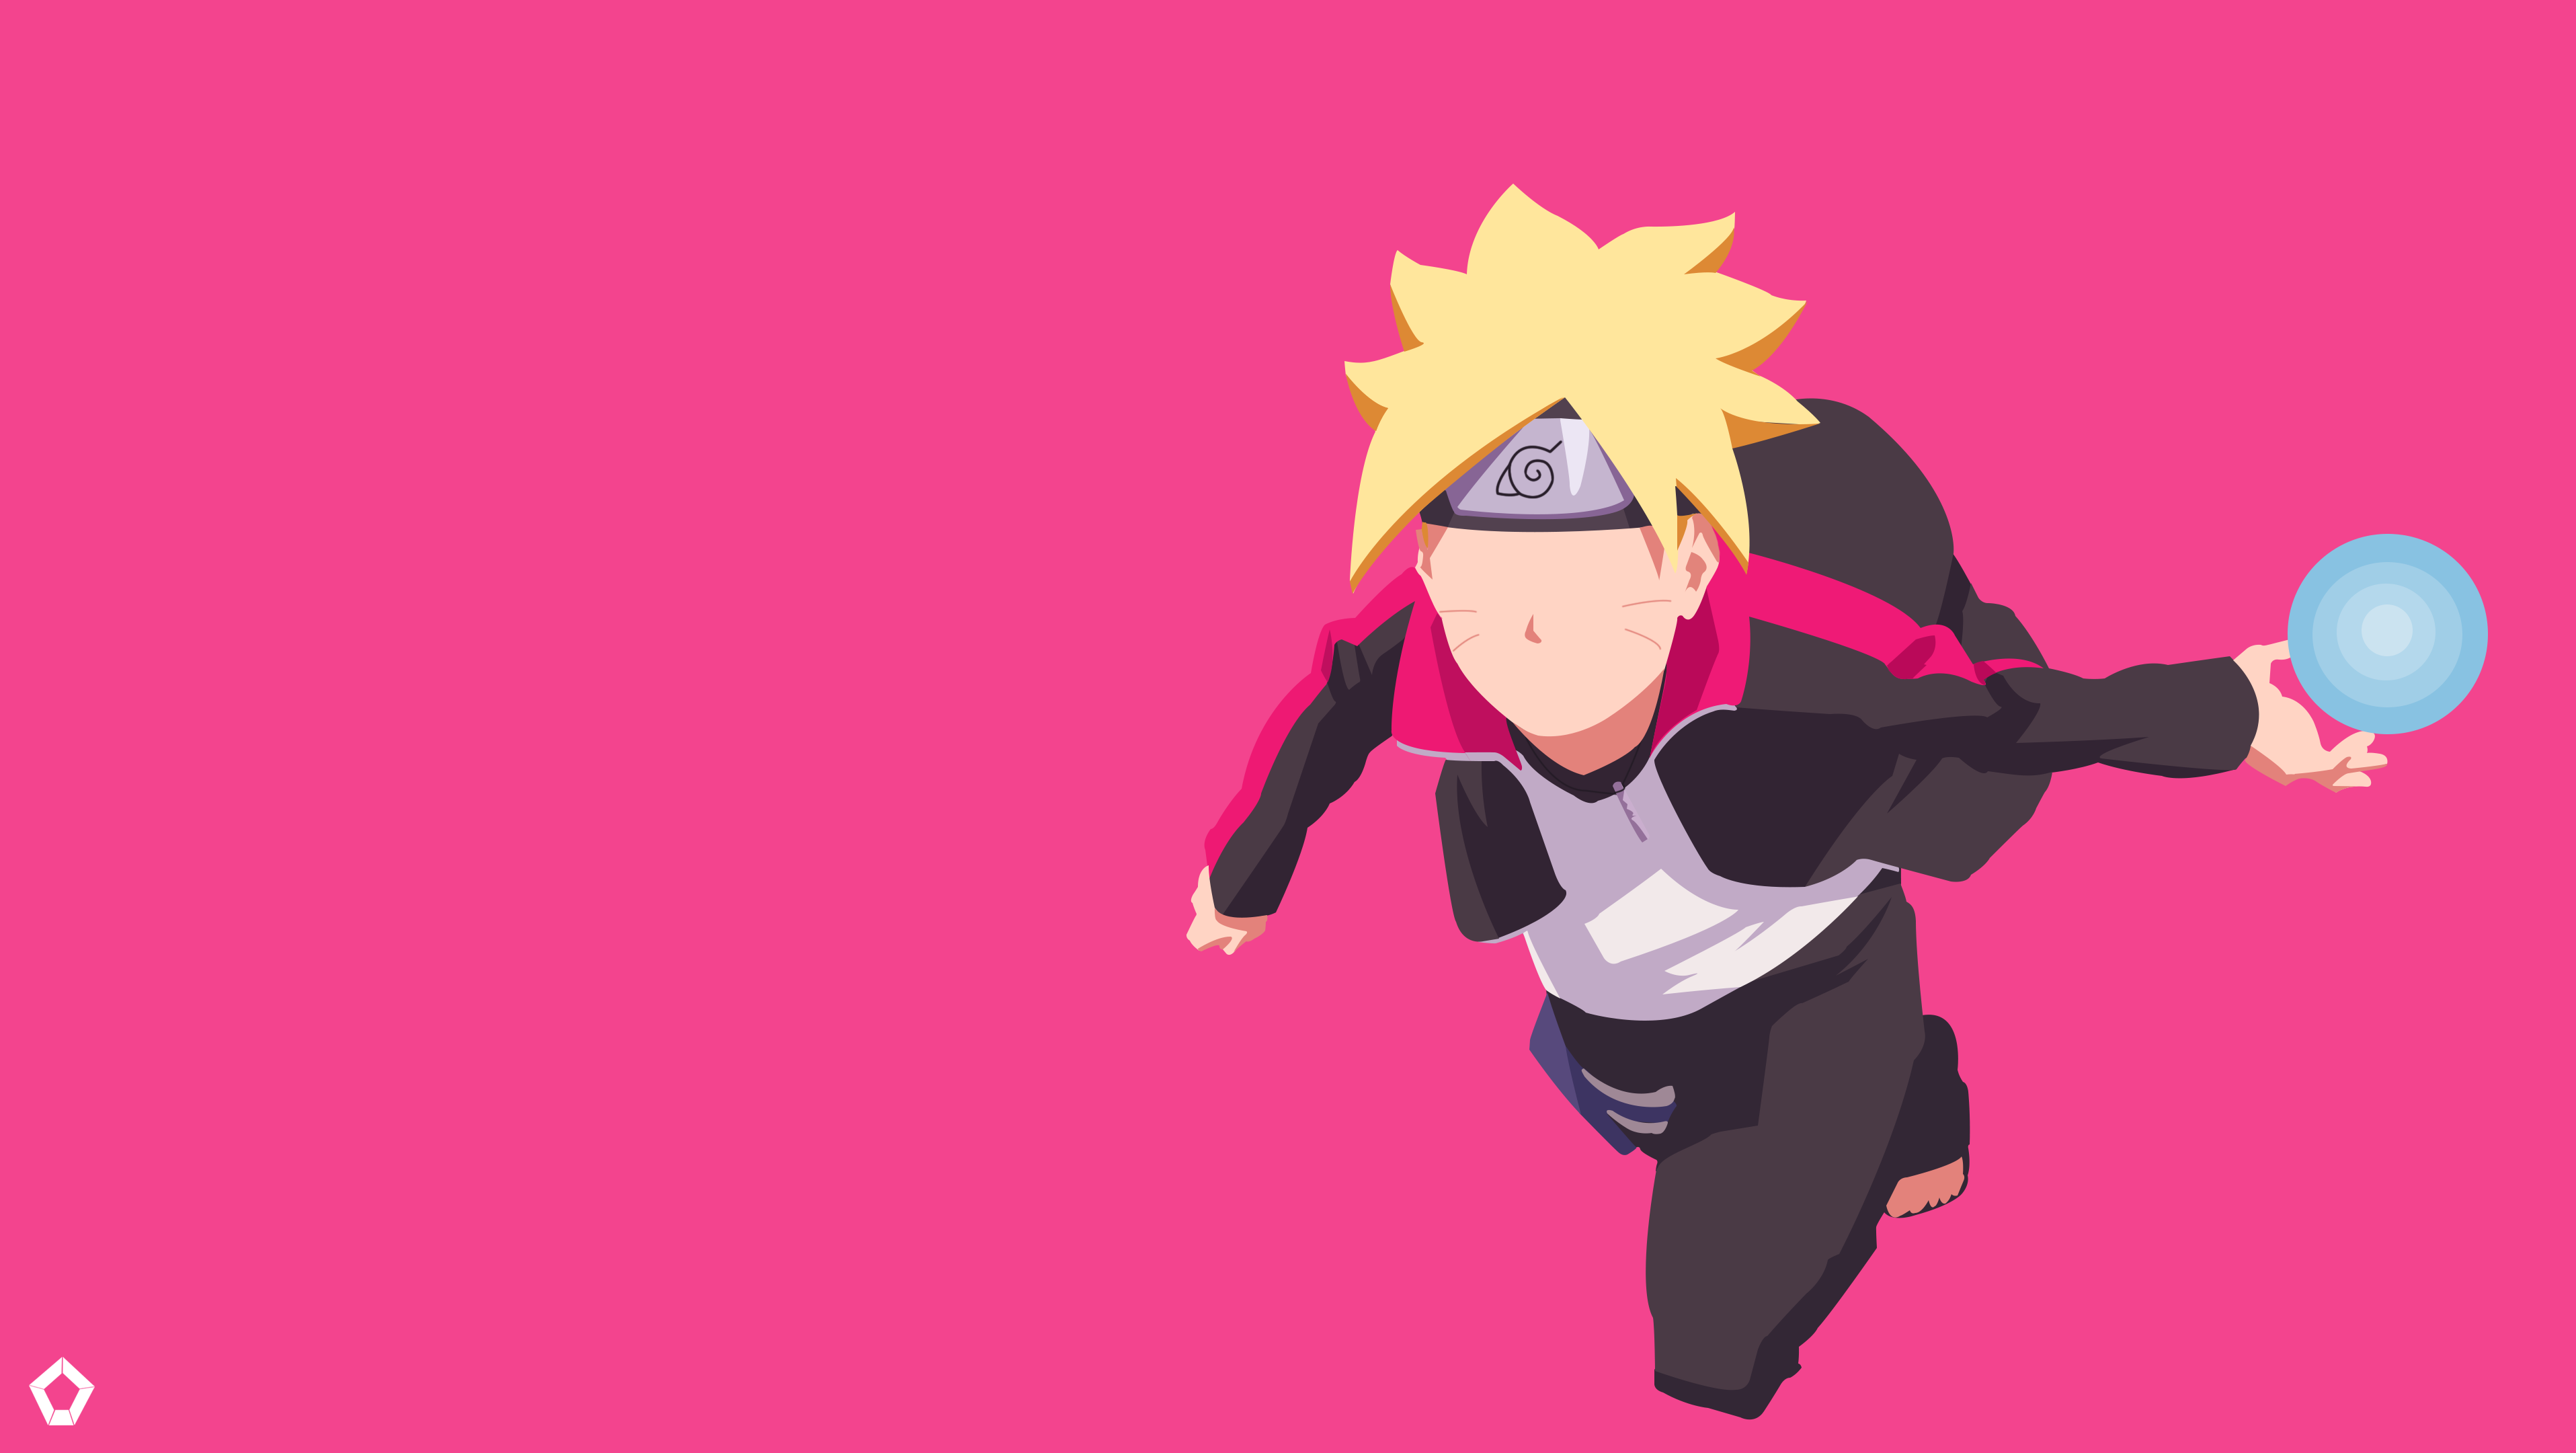 Boruto Hd Wallpaper Background Image 3832x2161 Id 810277 Wallpaper Abyss